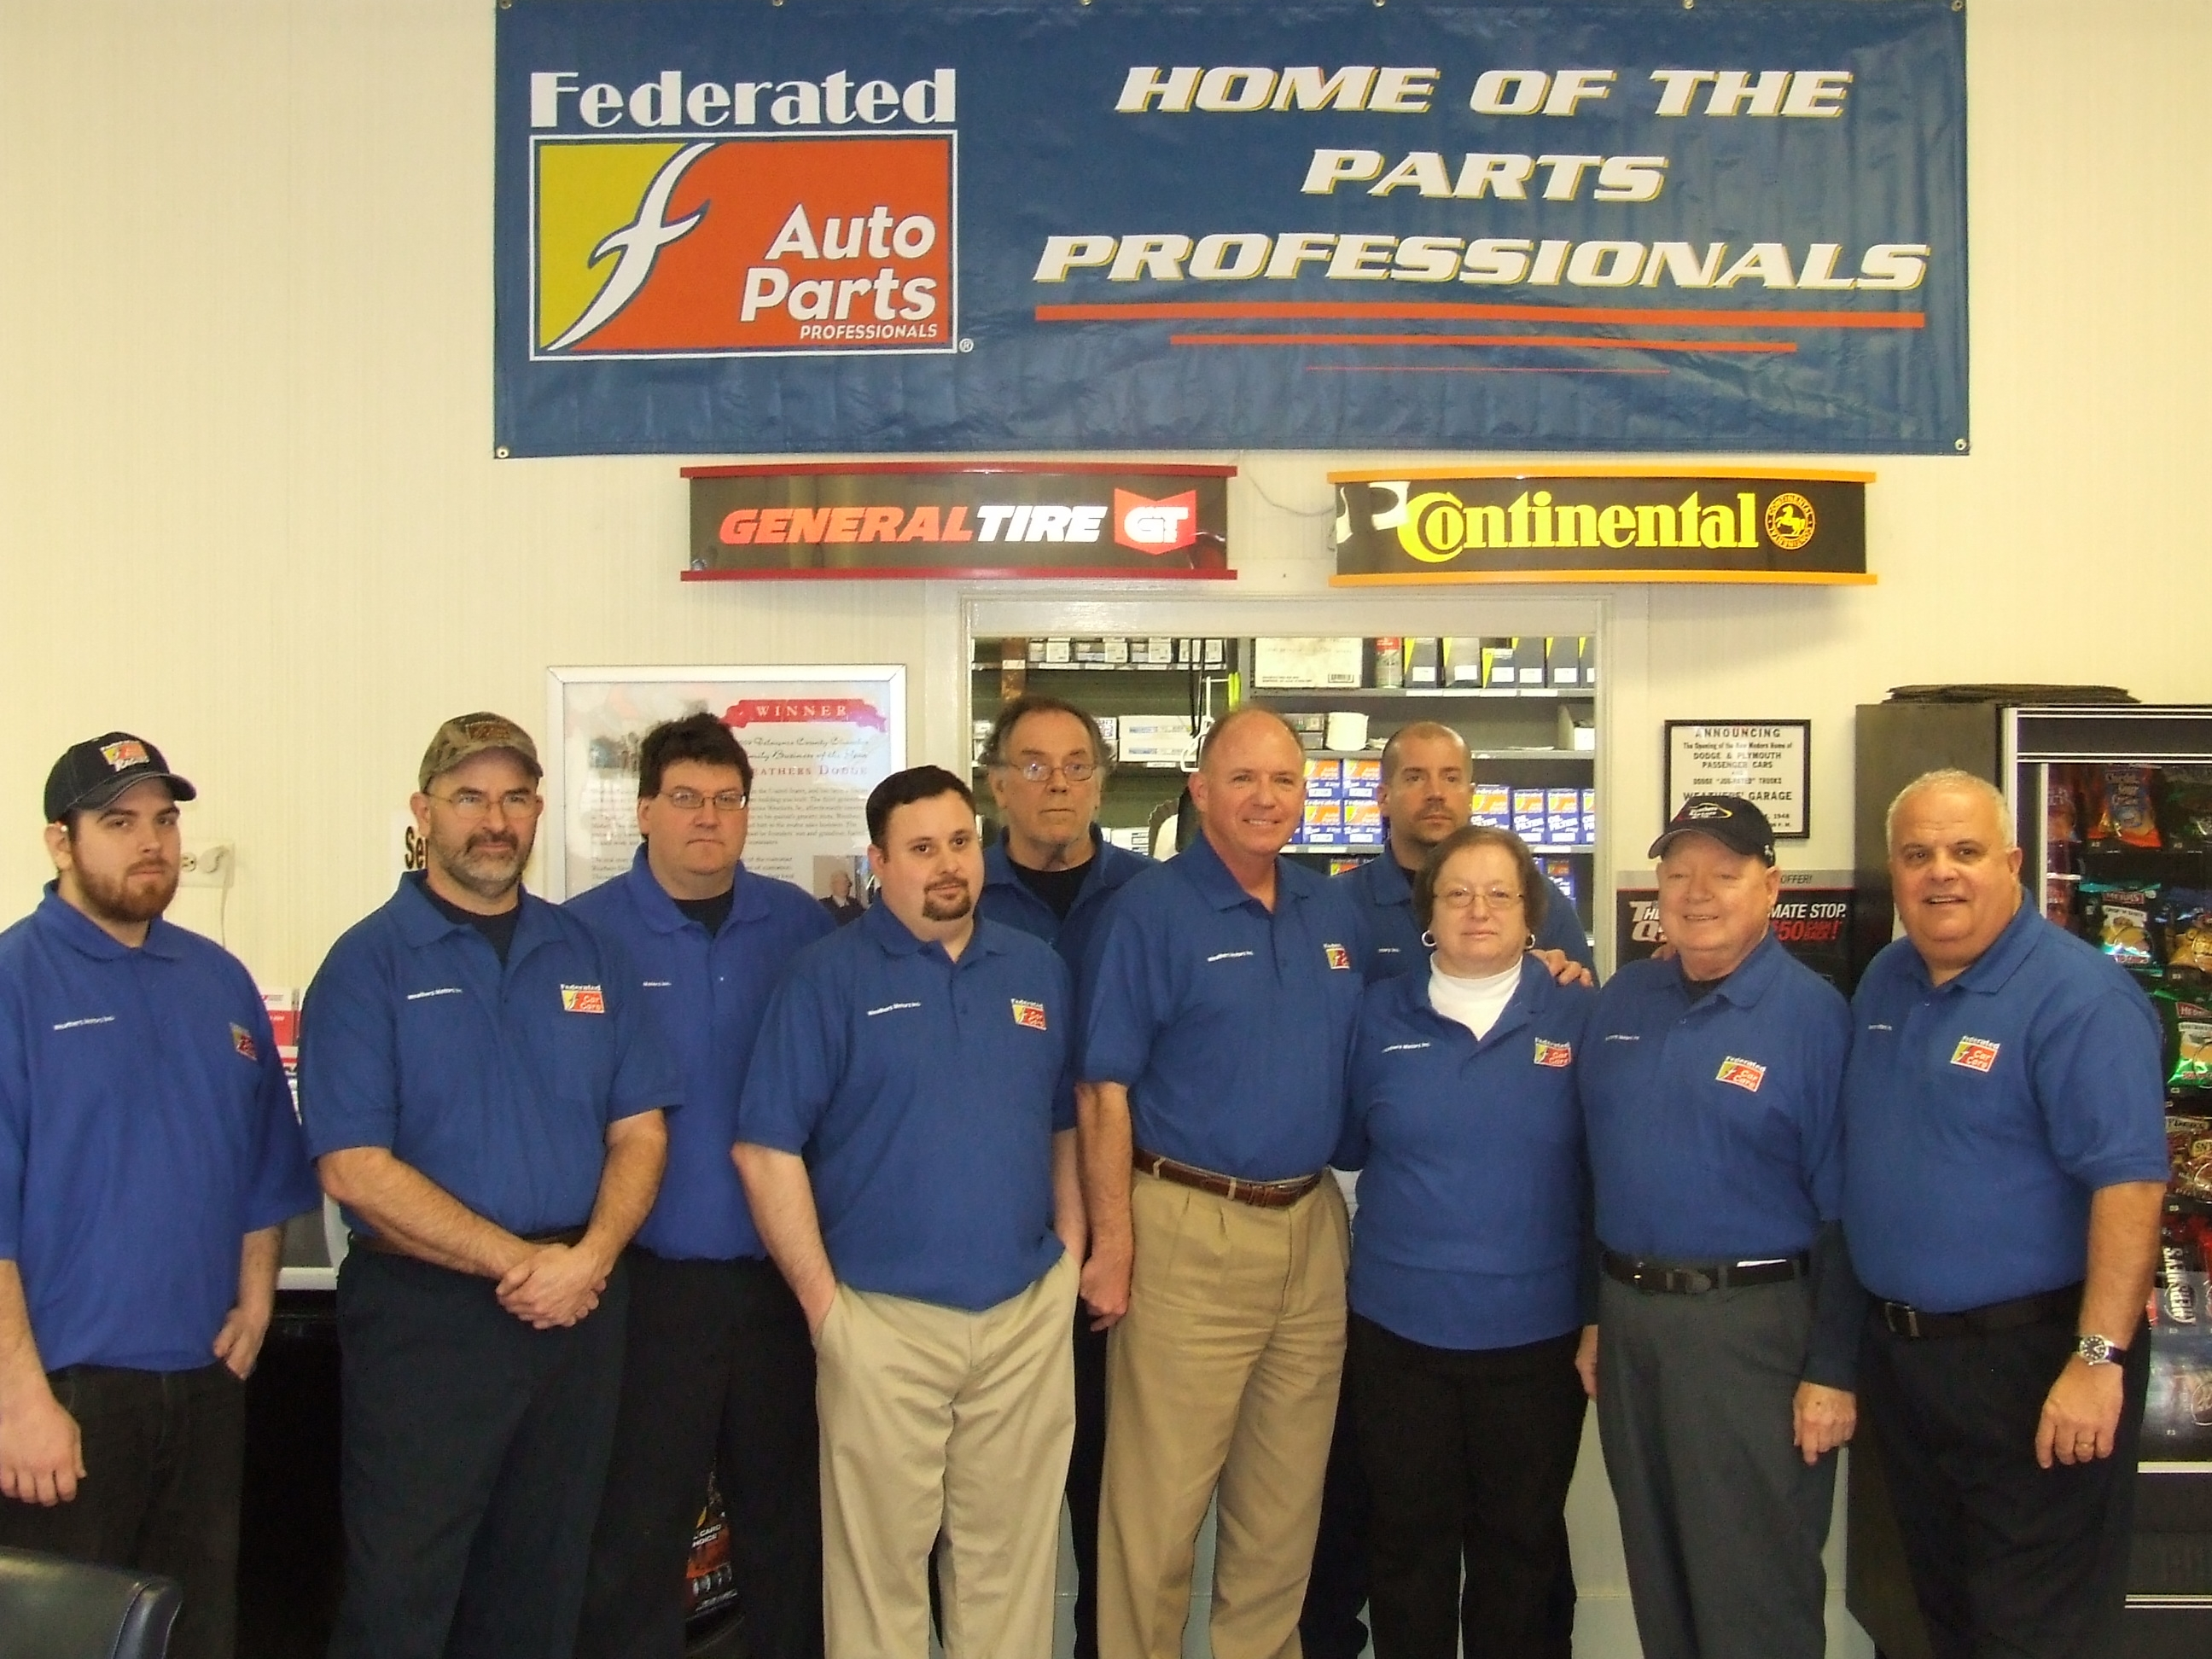 Weathers Motors honored as Federated Shop of the Year